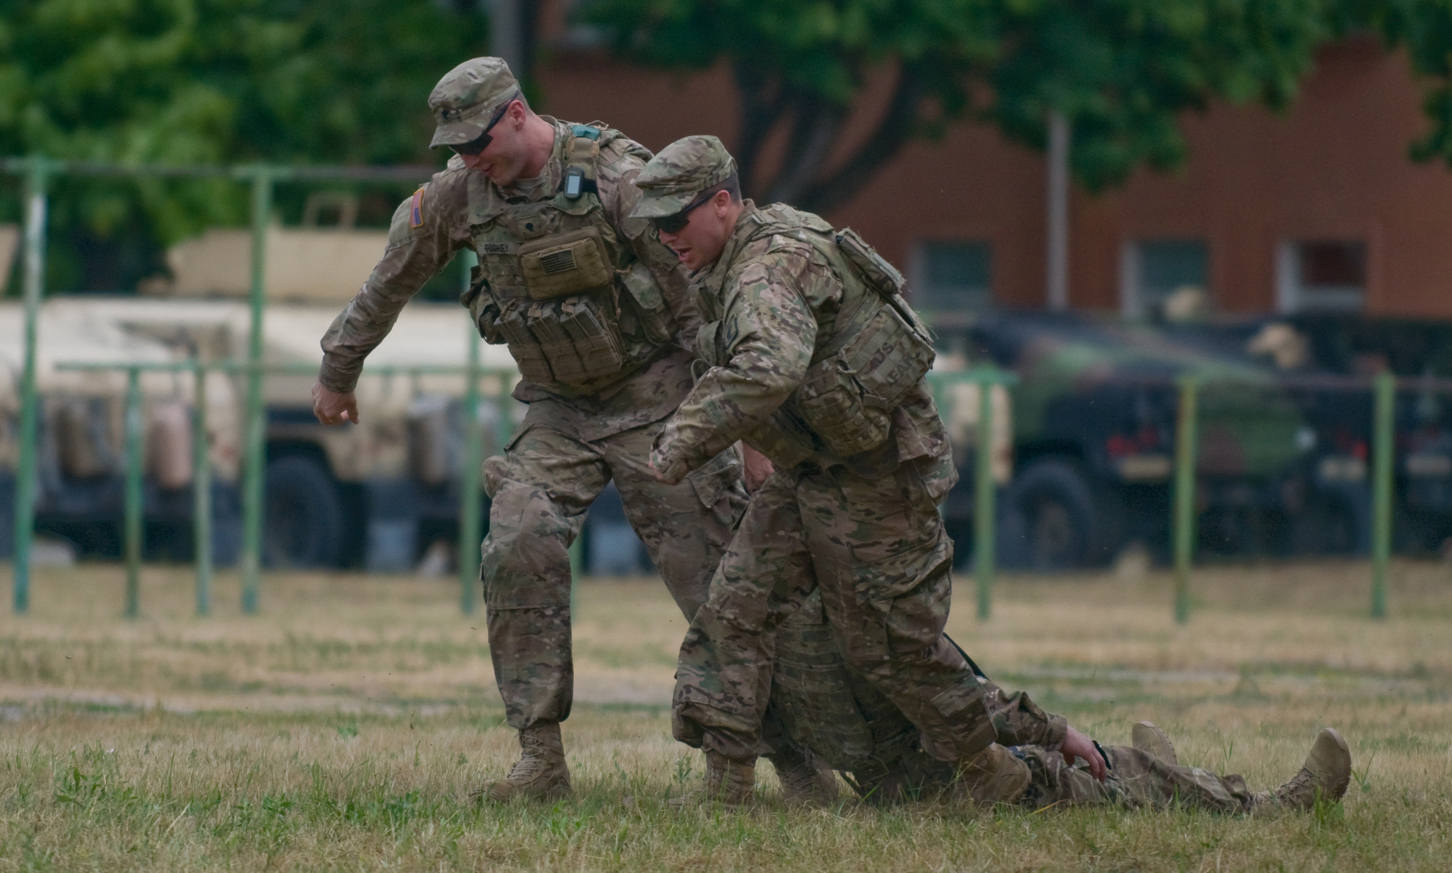 US Military • Tactical Combat Casualty Care